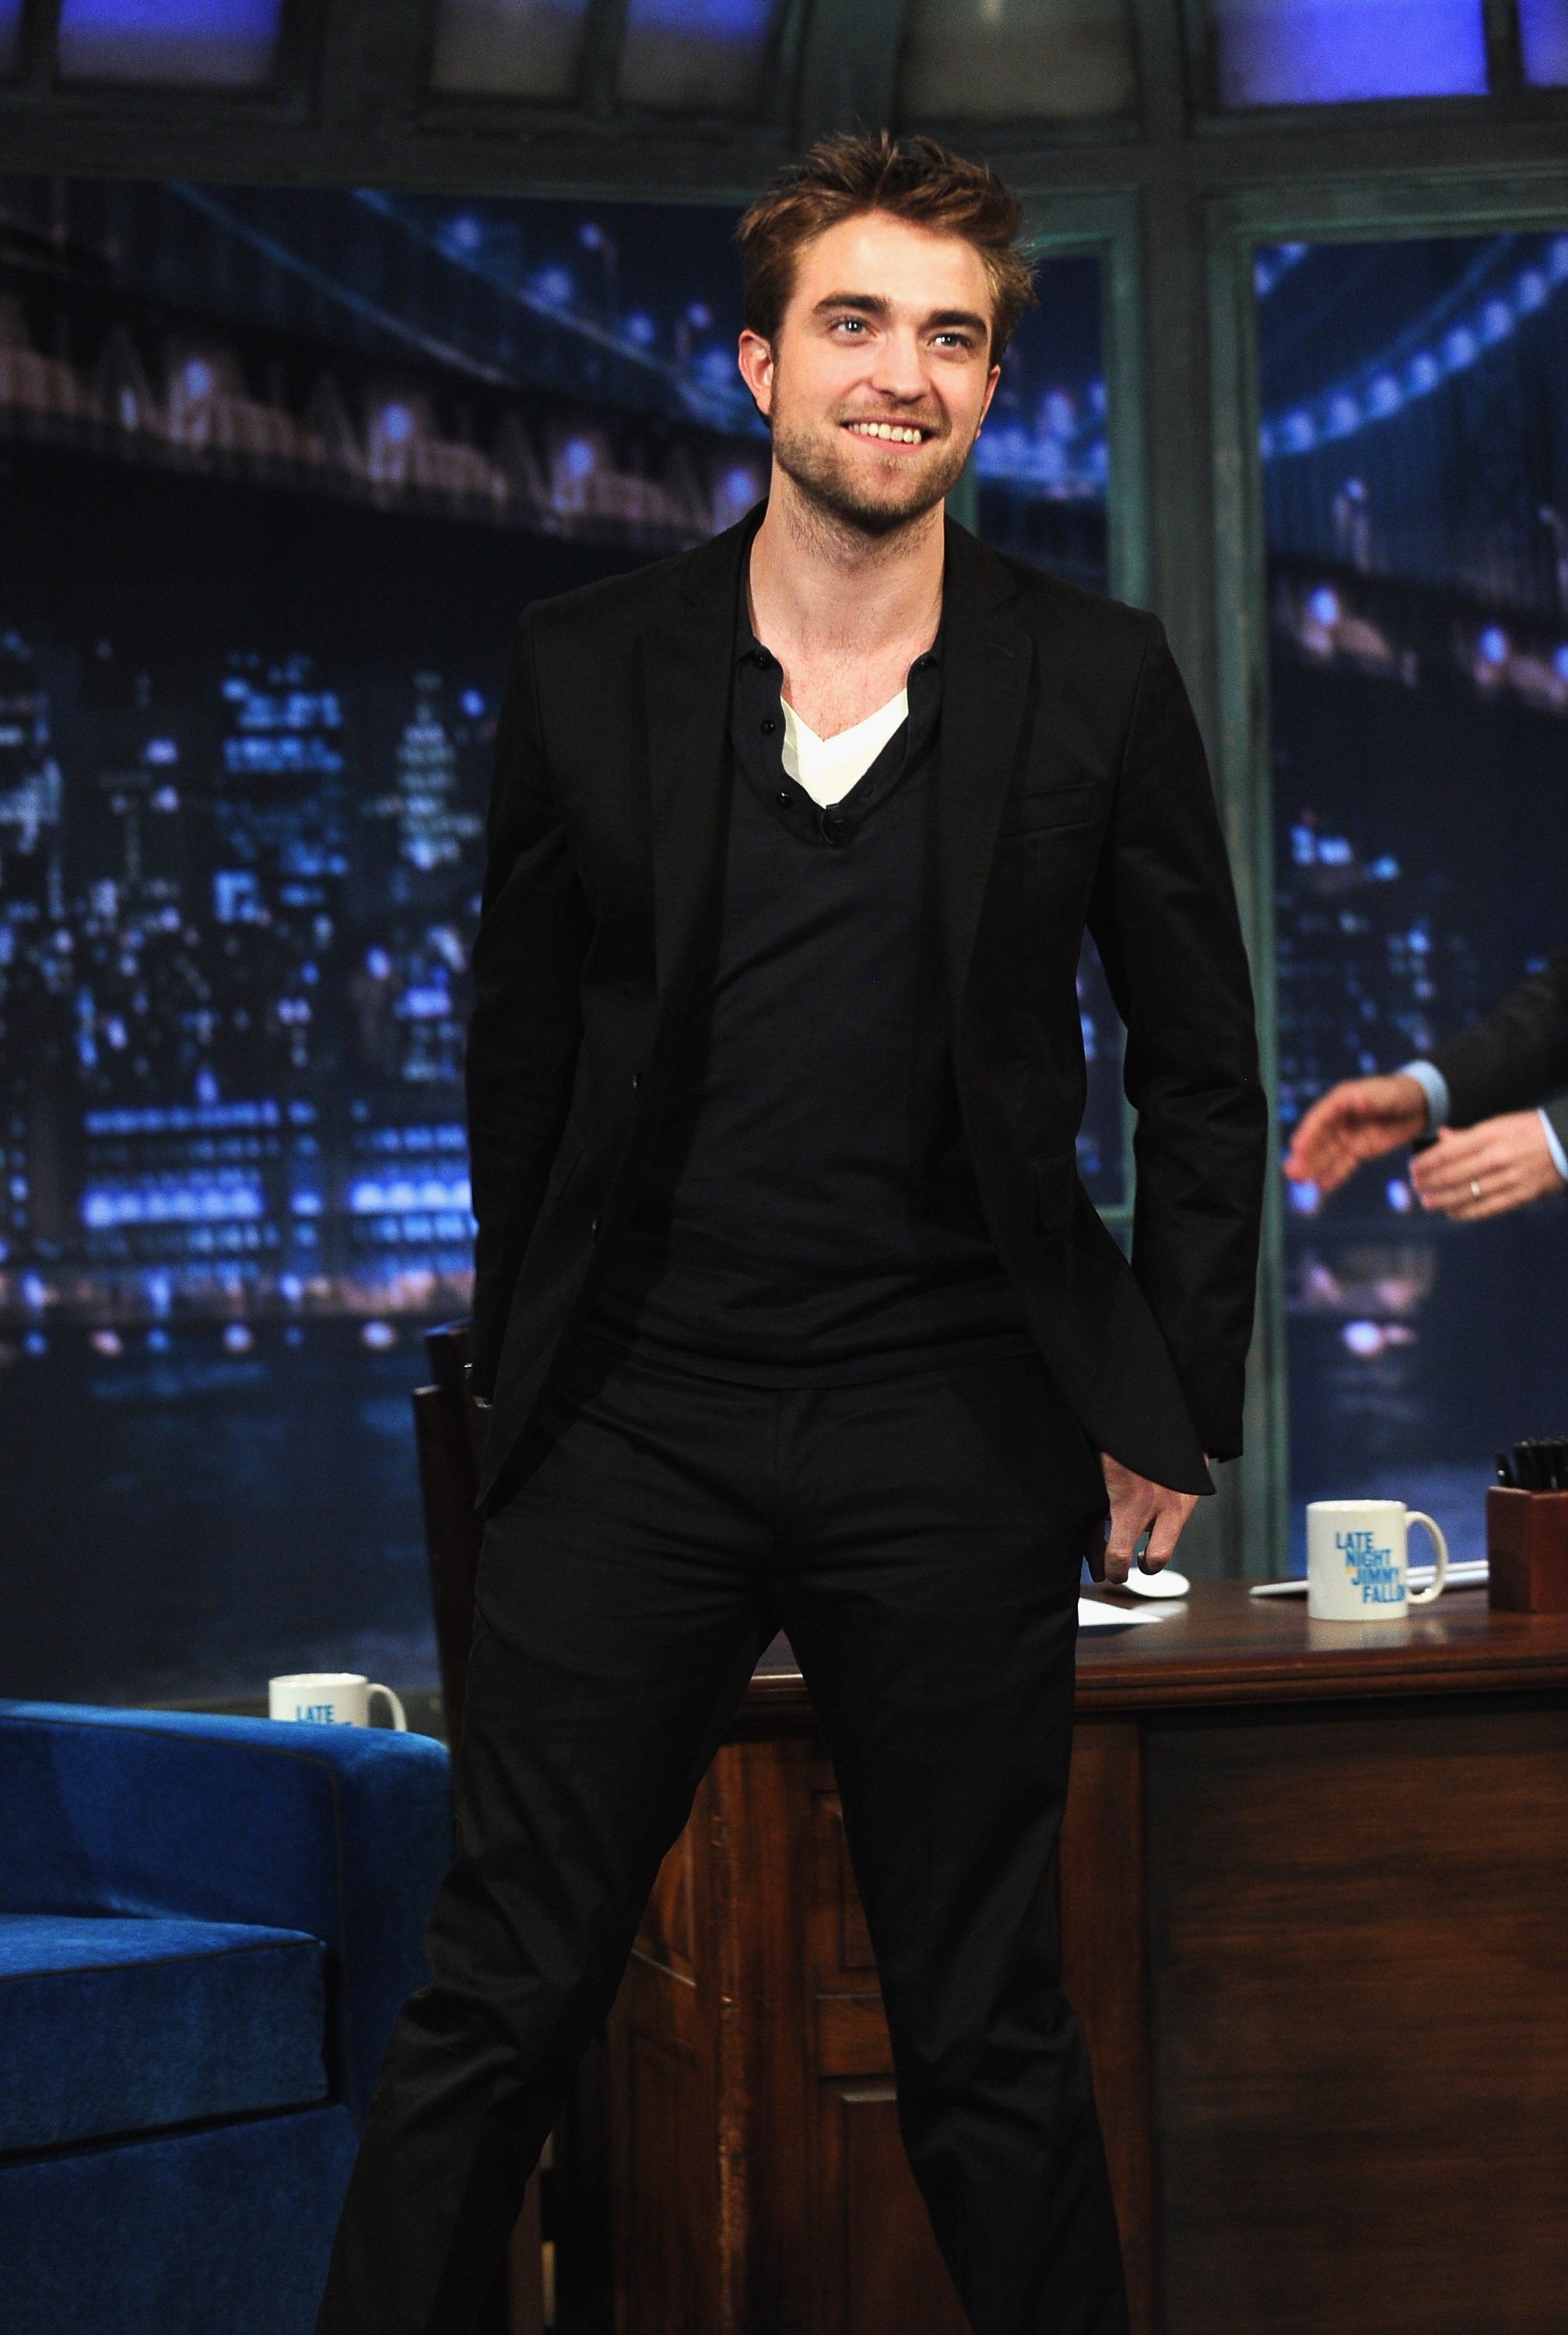 HQ Pictures of Robert Pattinson On Jimmy Fallon   Thinking